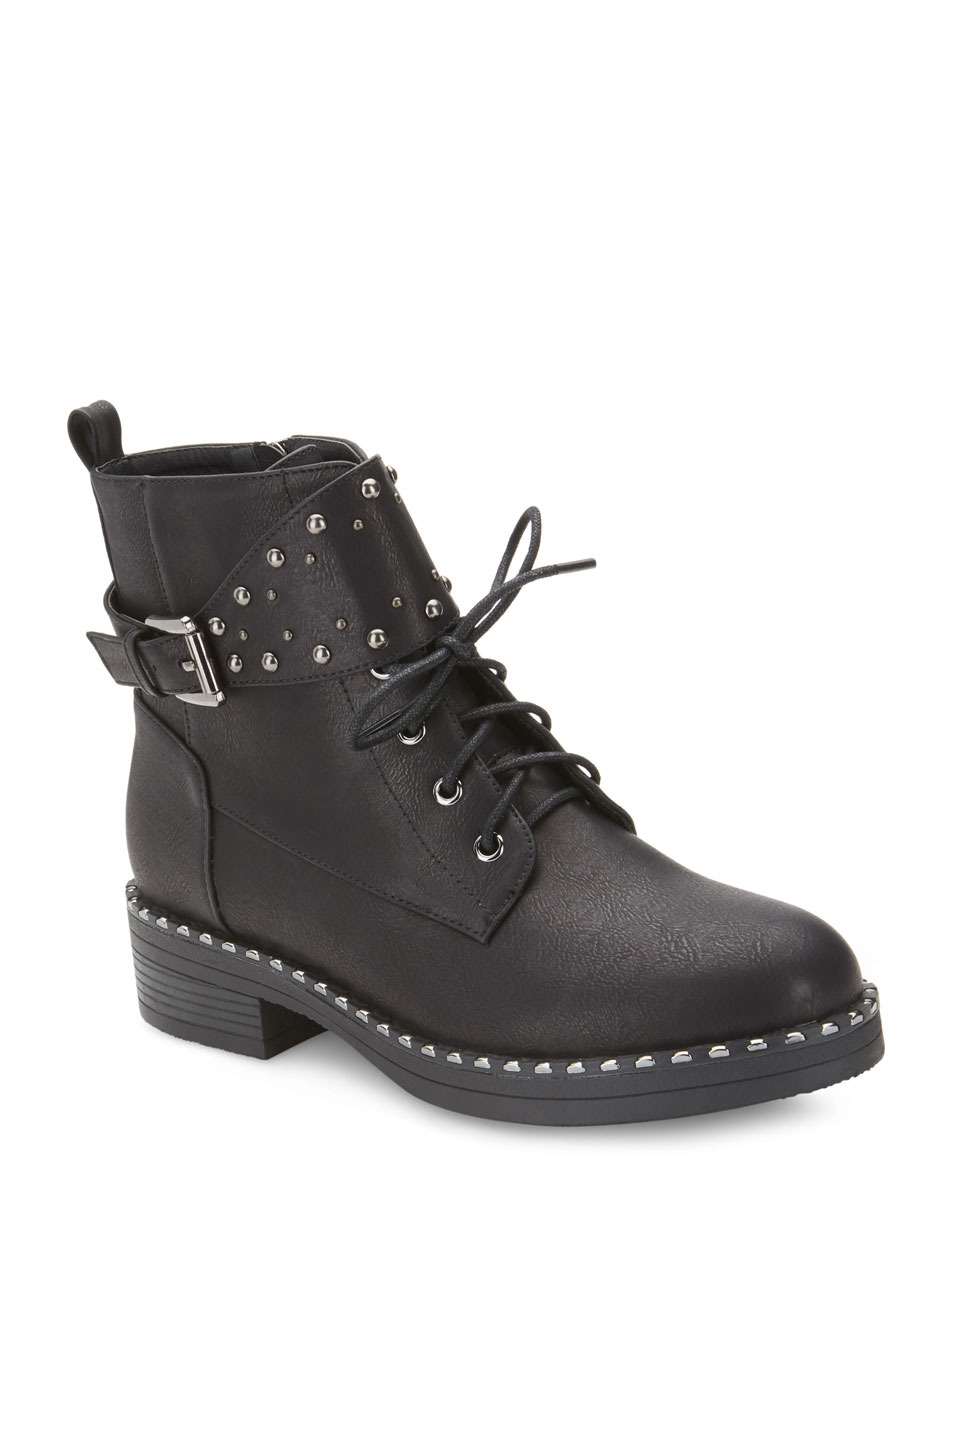 Marshall Front Flap Embellished Buckle Combat Boots in Black